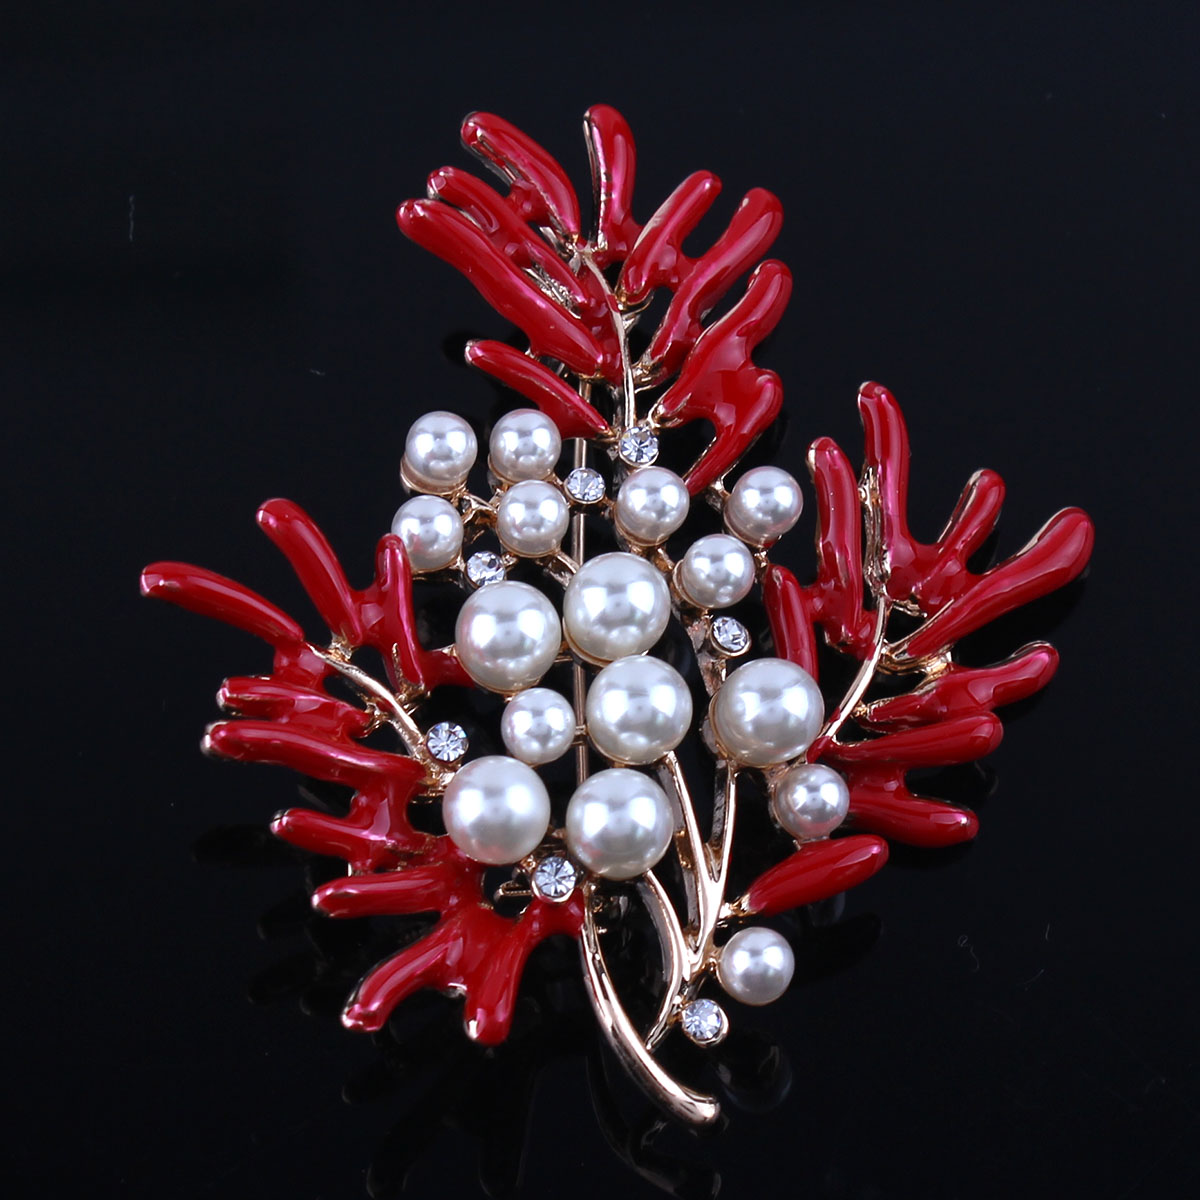 Grace Jun2017New Arrial Red Coral Brooches for Women Party Charm Leaf Shape Pear Brooch Pin Jewelry Accessories Bijoux Good Gift